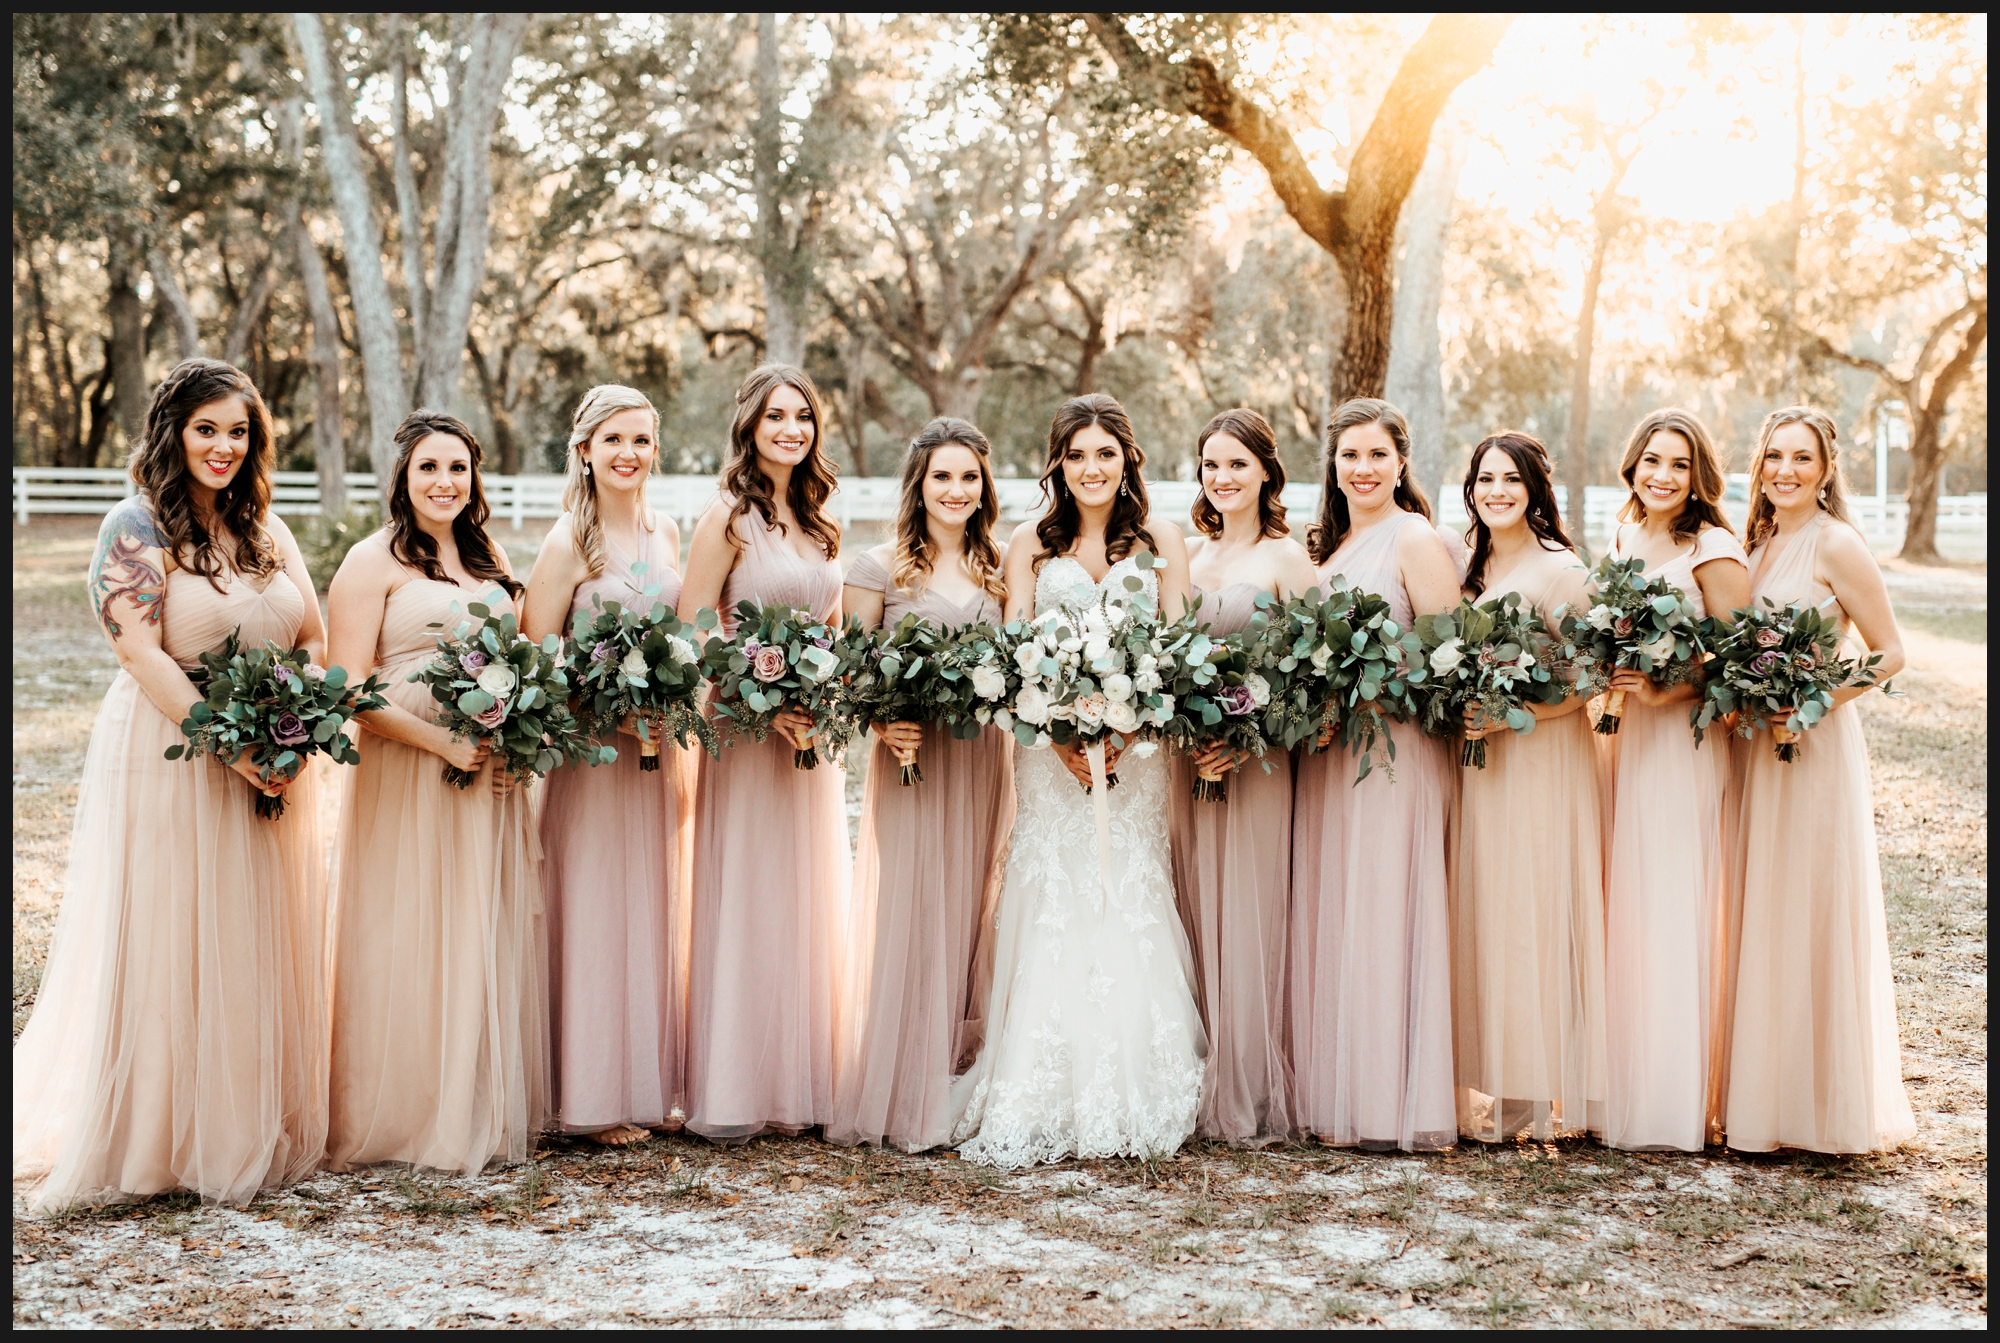 Orlando-Wedding-Photographer-destination-wedding-photographer-florida-wedding-photographer-bohemian-wedding-photographer_1096.jpg